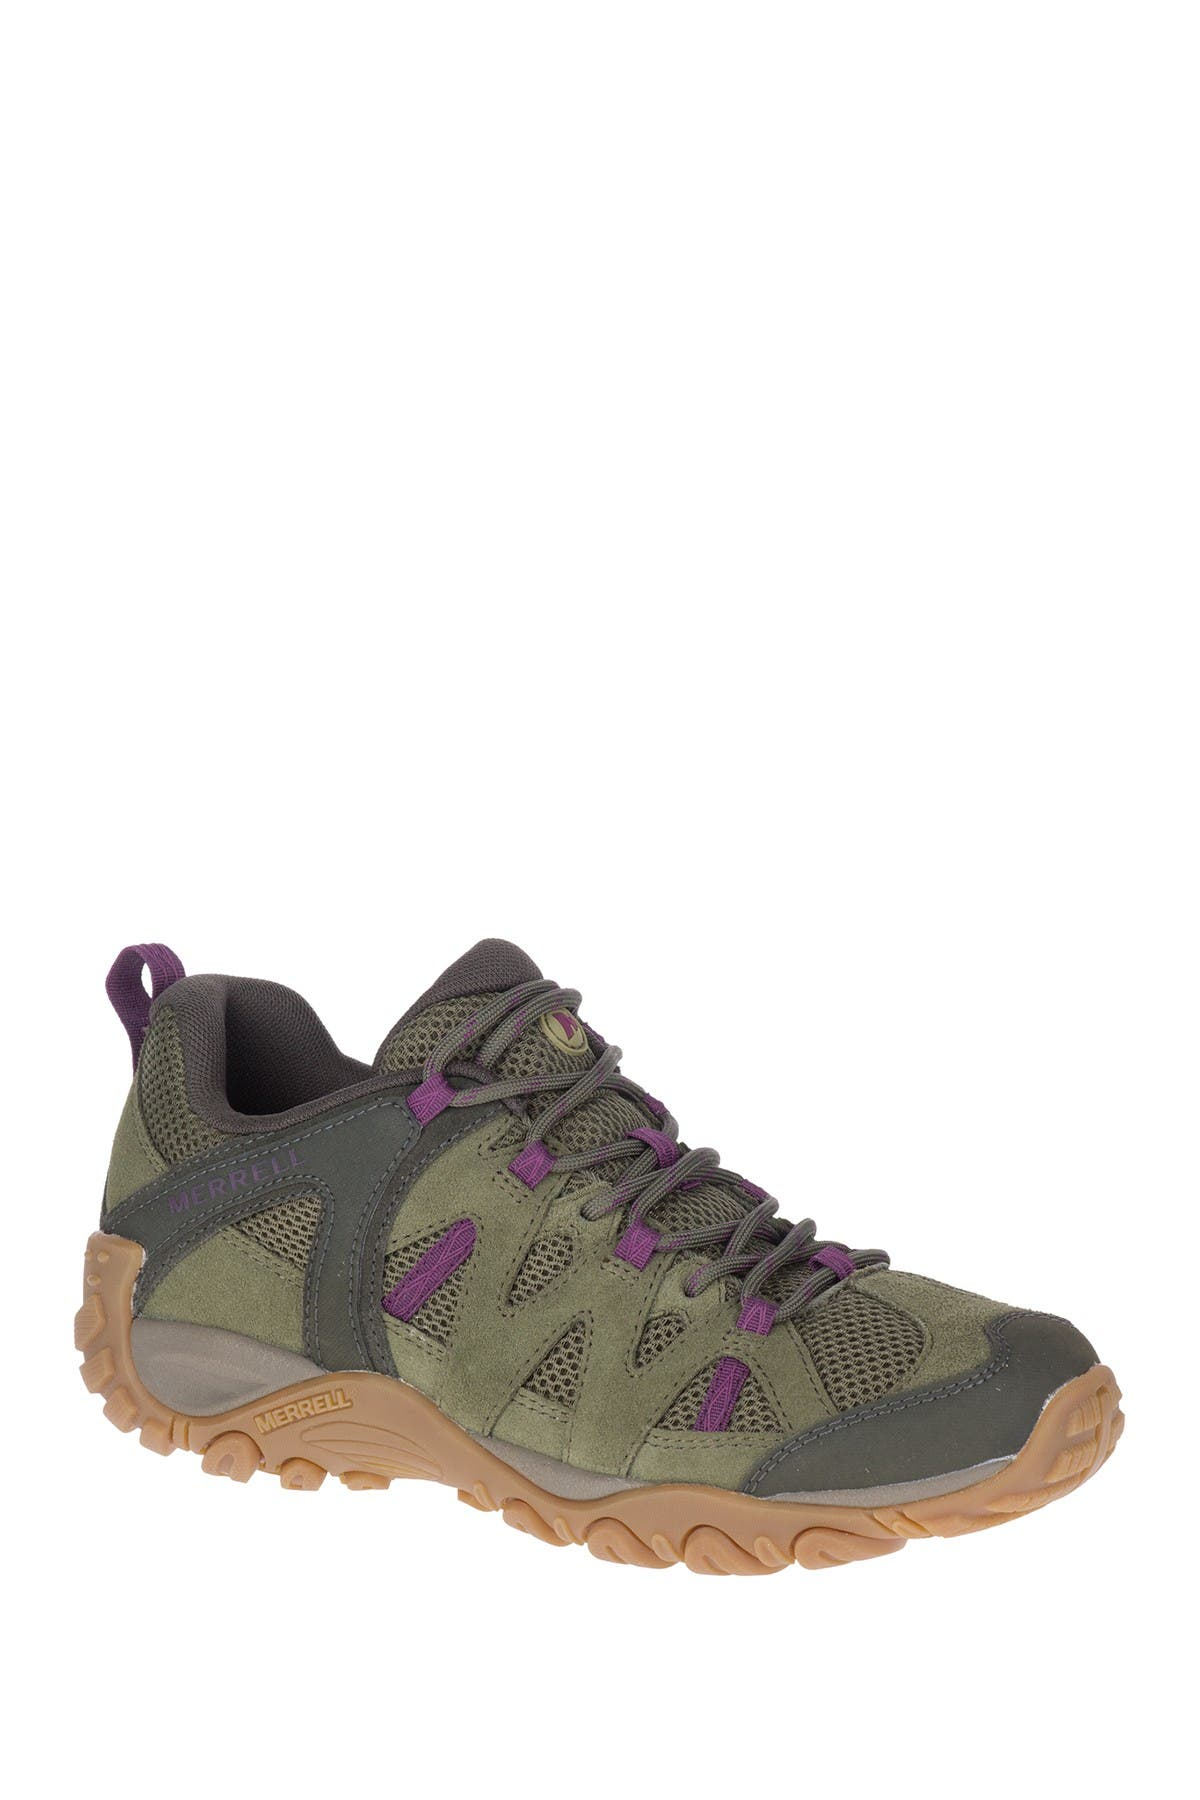 Image of Merrell Deverta 2 Hiking Sneaker